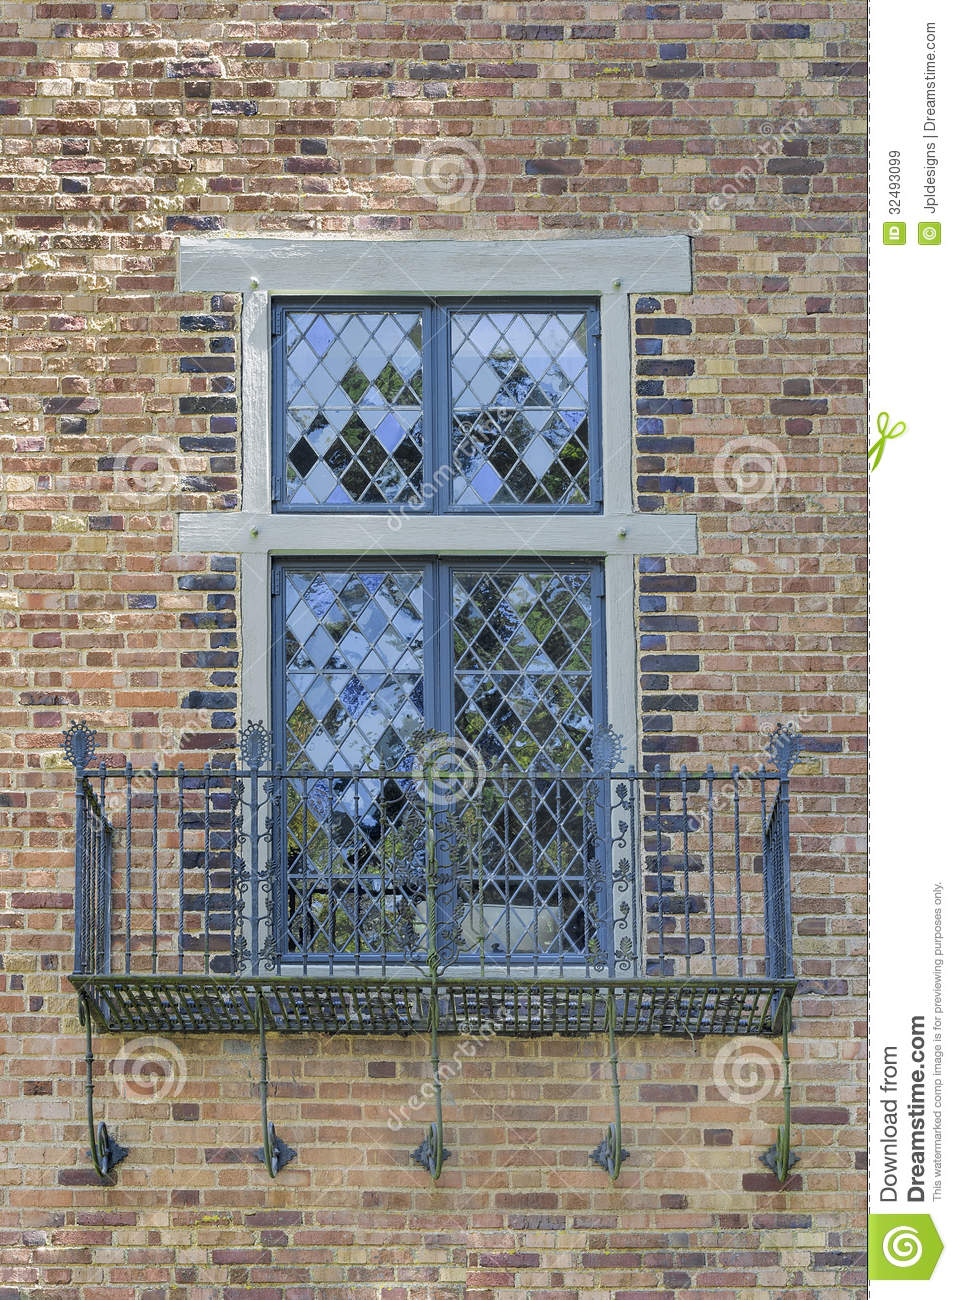 Tudor Style Windows Magnificent Tudor Style Windows With Balcony Royalty Free Stock Images  Image . Design Ideas